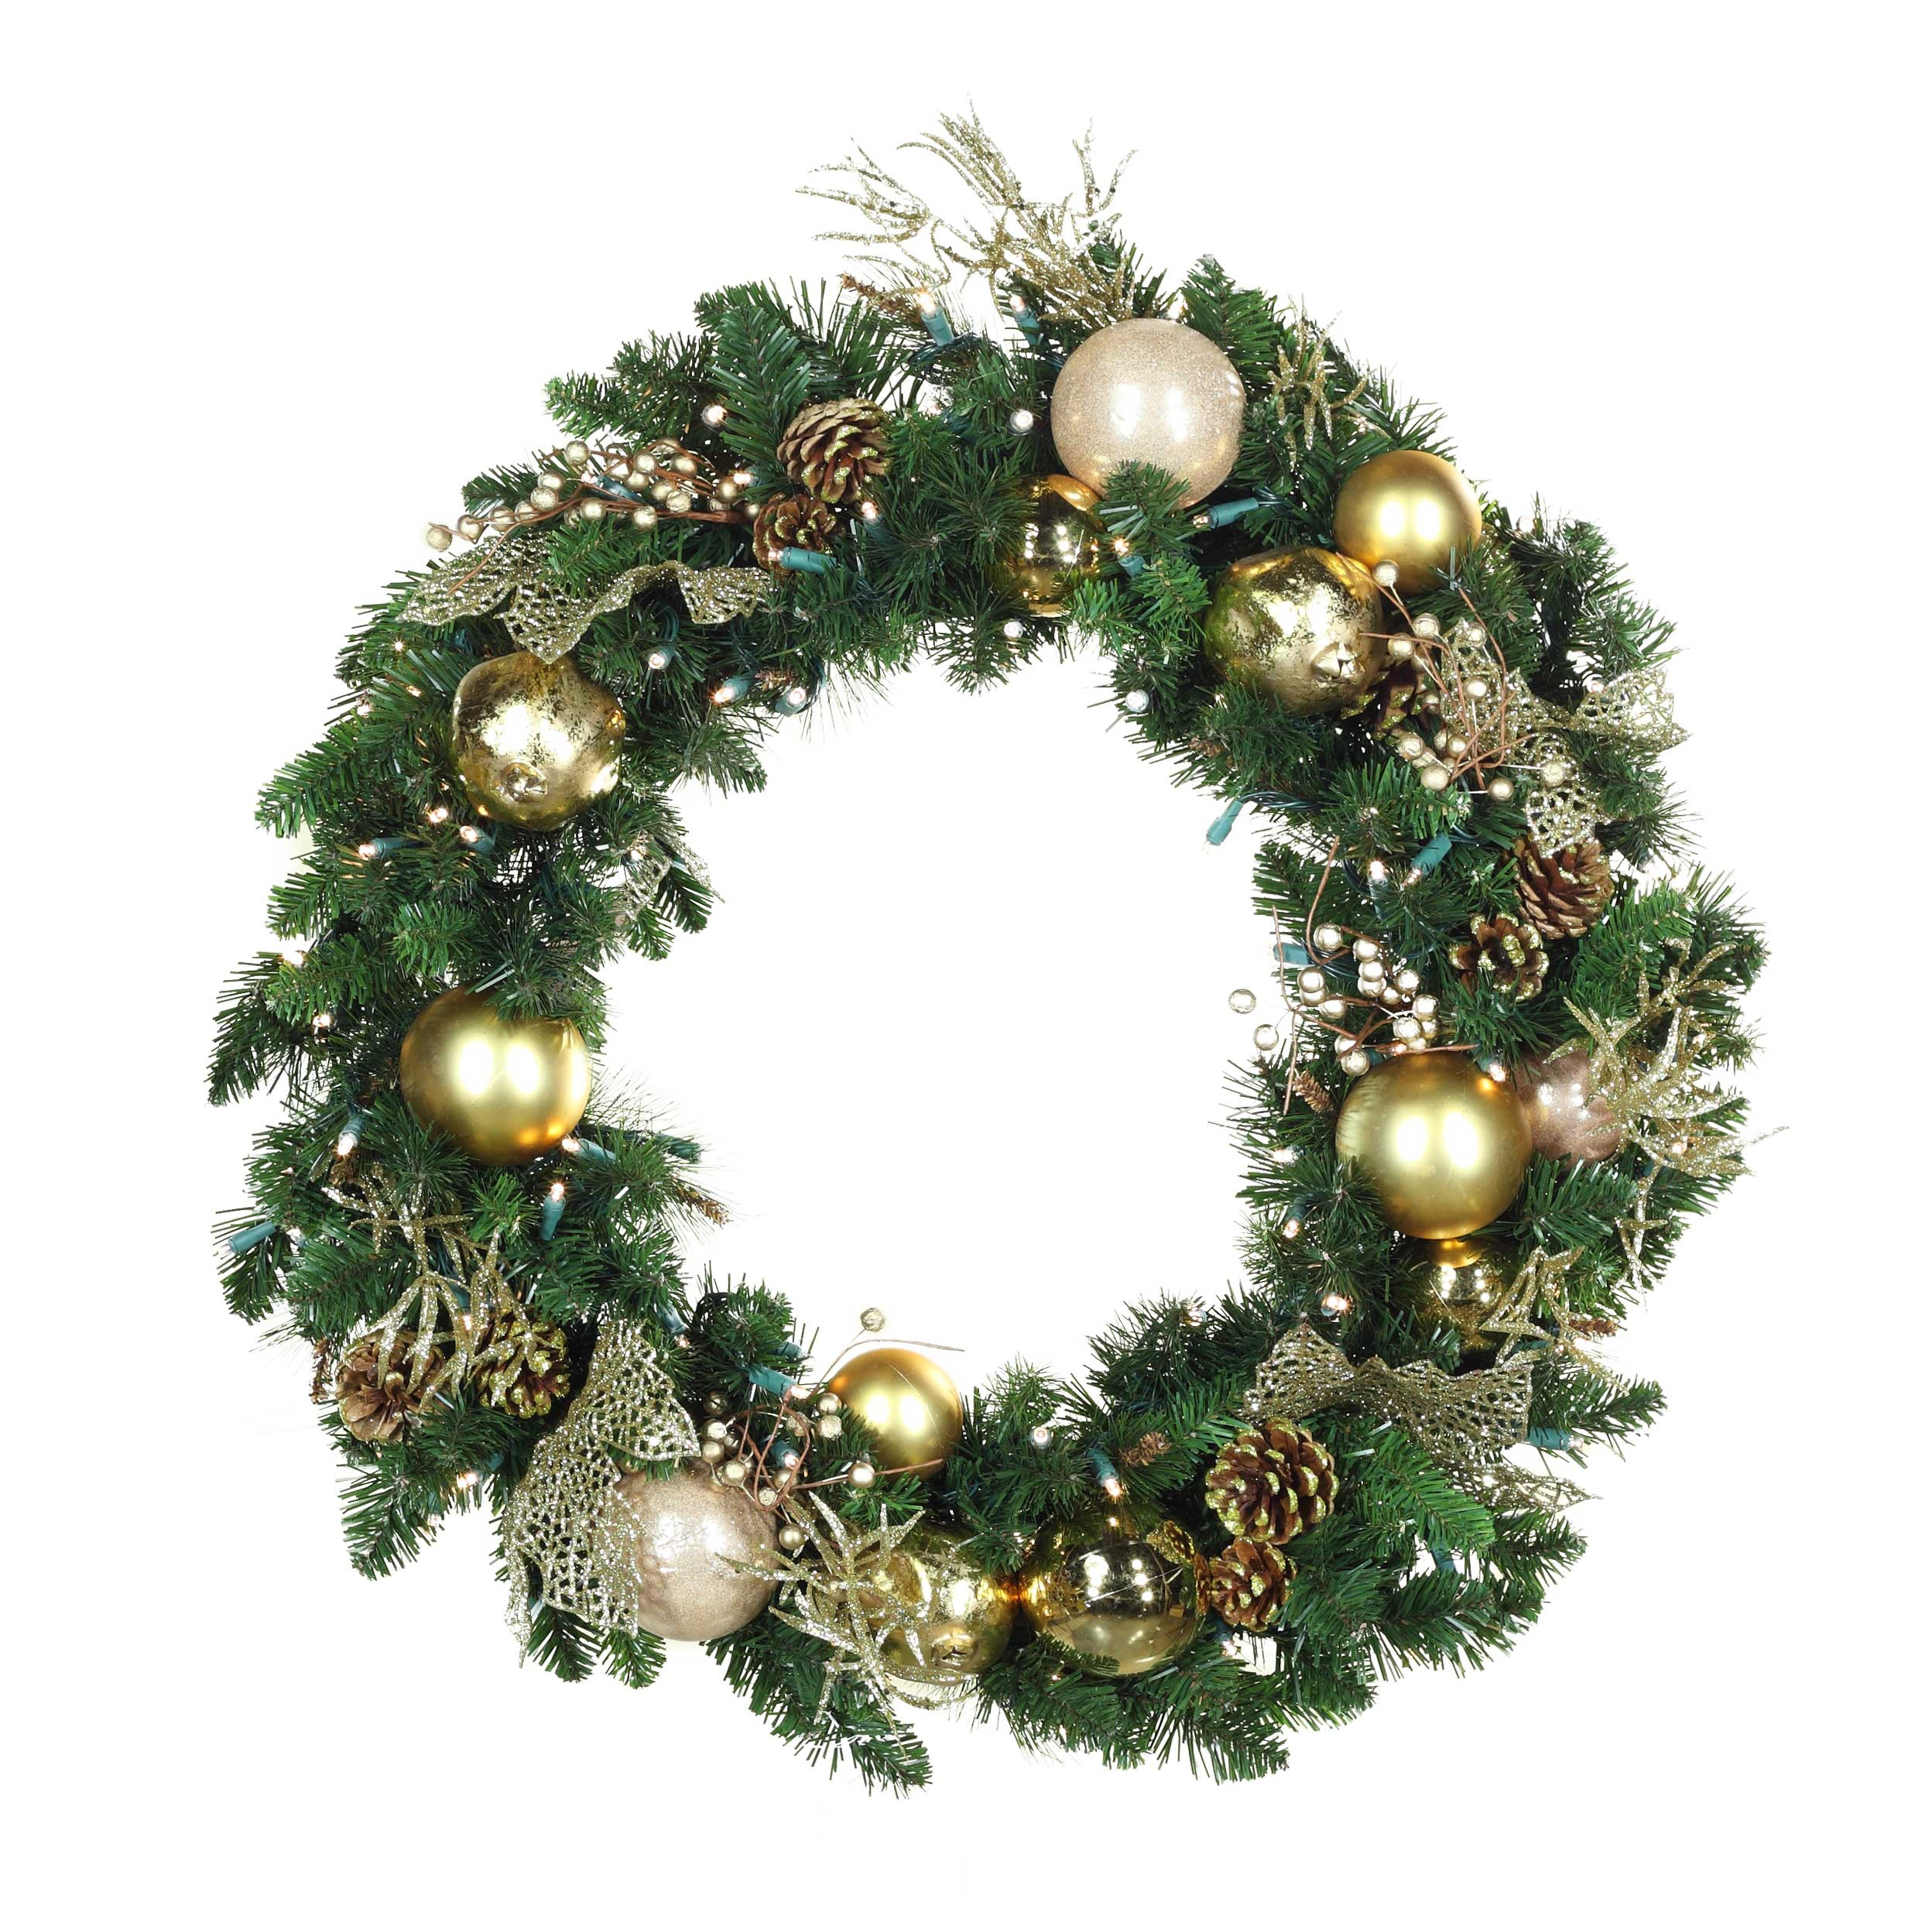 decorative wreaths royal gold battery operated led wreath warm white lights - Battery Operated Christmas Decorations